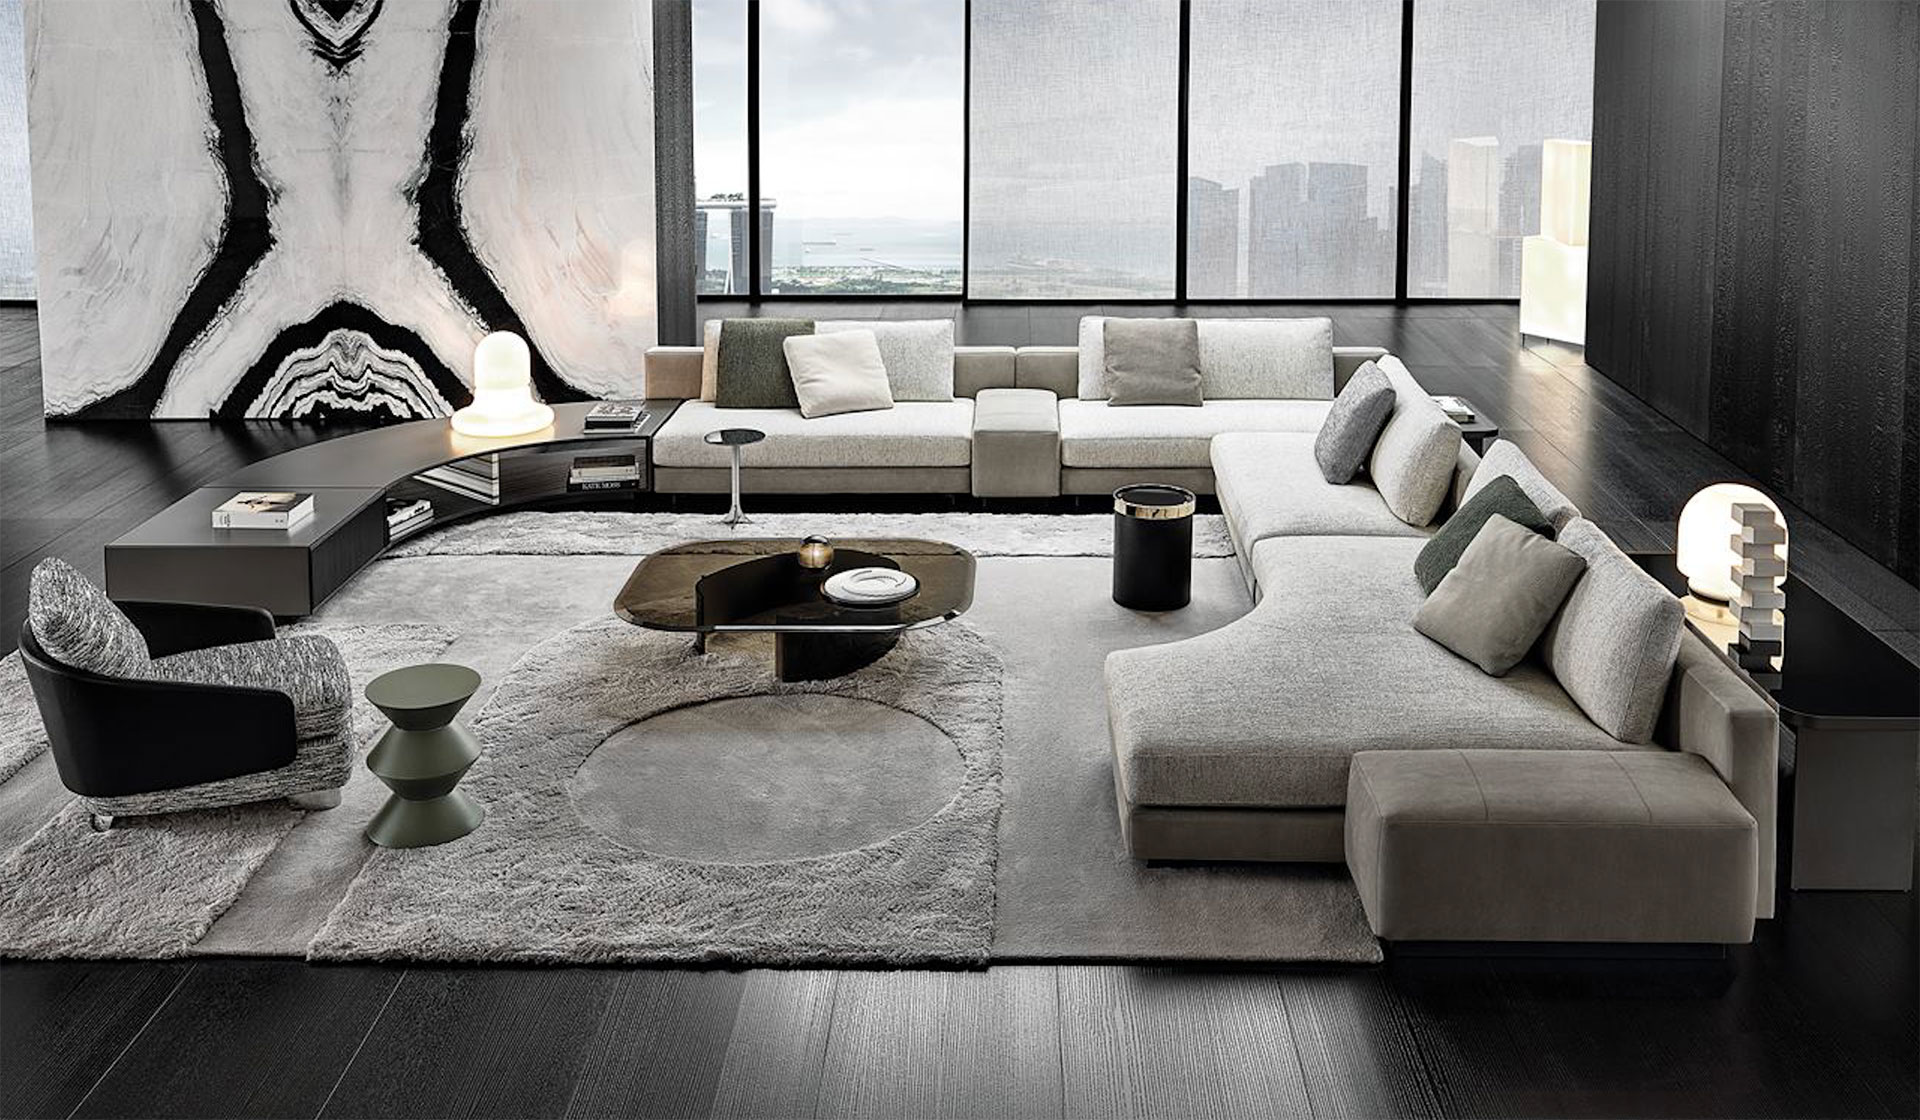 Minotti Daniels seating system Designed by Chrisophe Delcourt